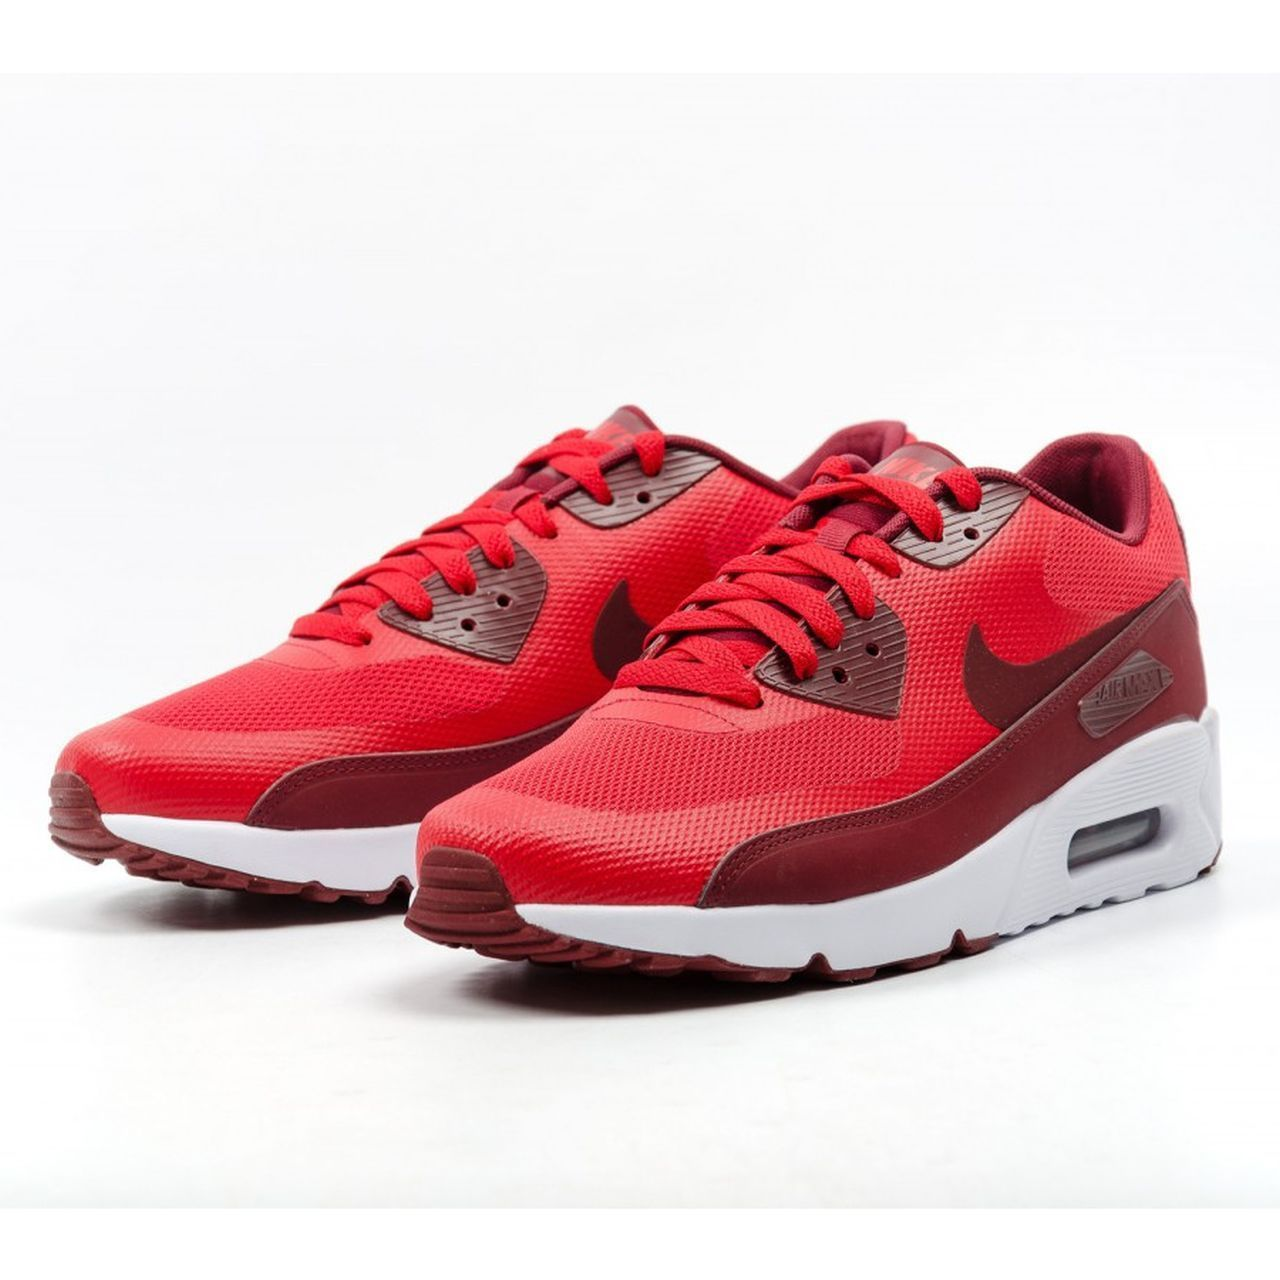 NIKE AIR MAX 90 ULTRA 2.0 ESSENTIAL MEN'S US SIZE 10 STYLE# 875695-600